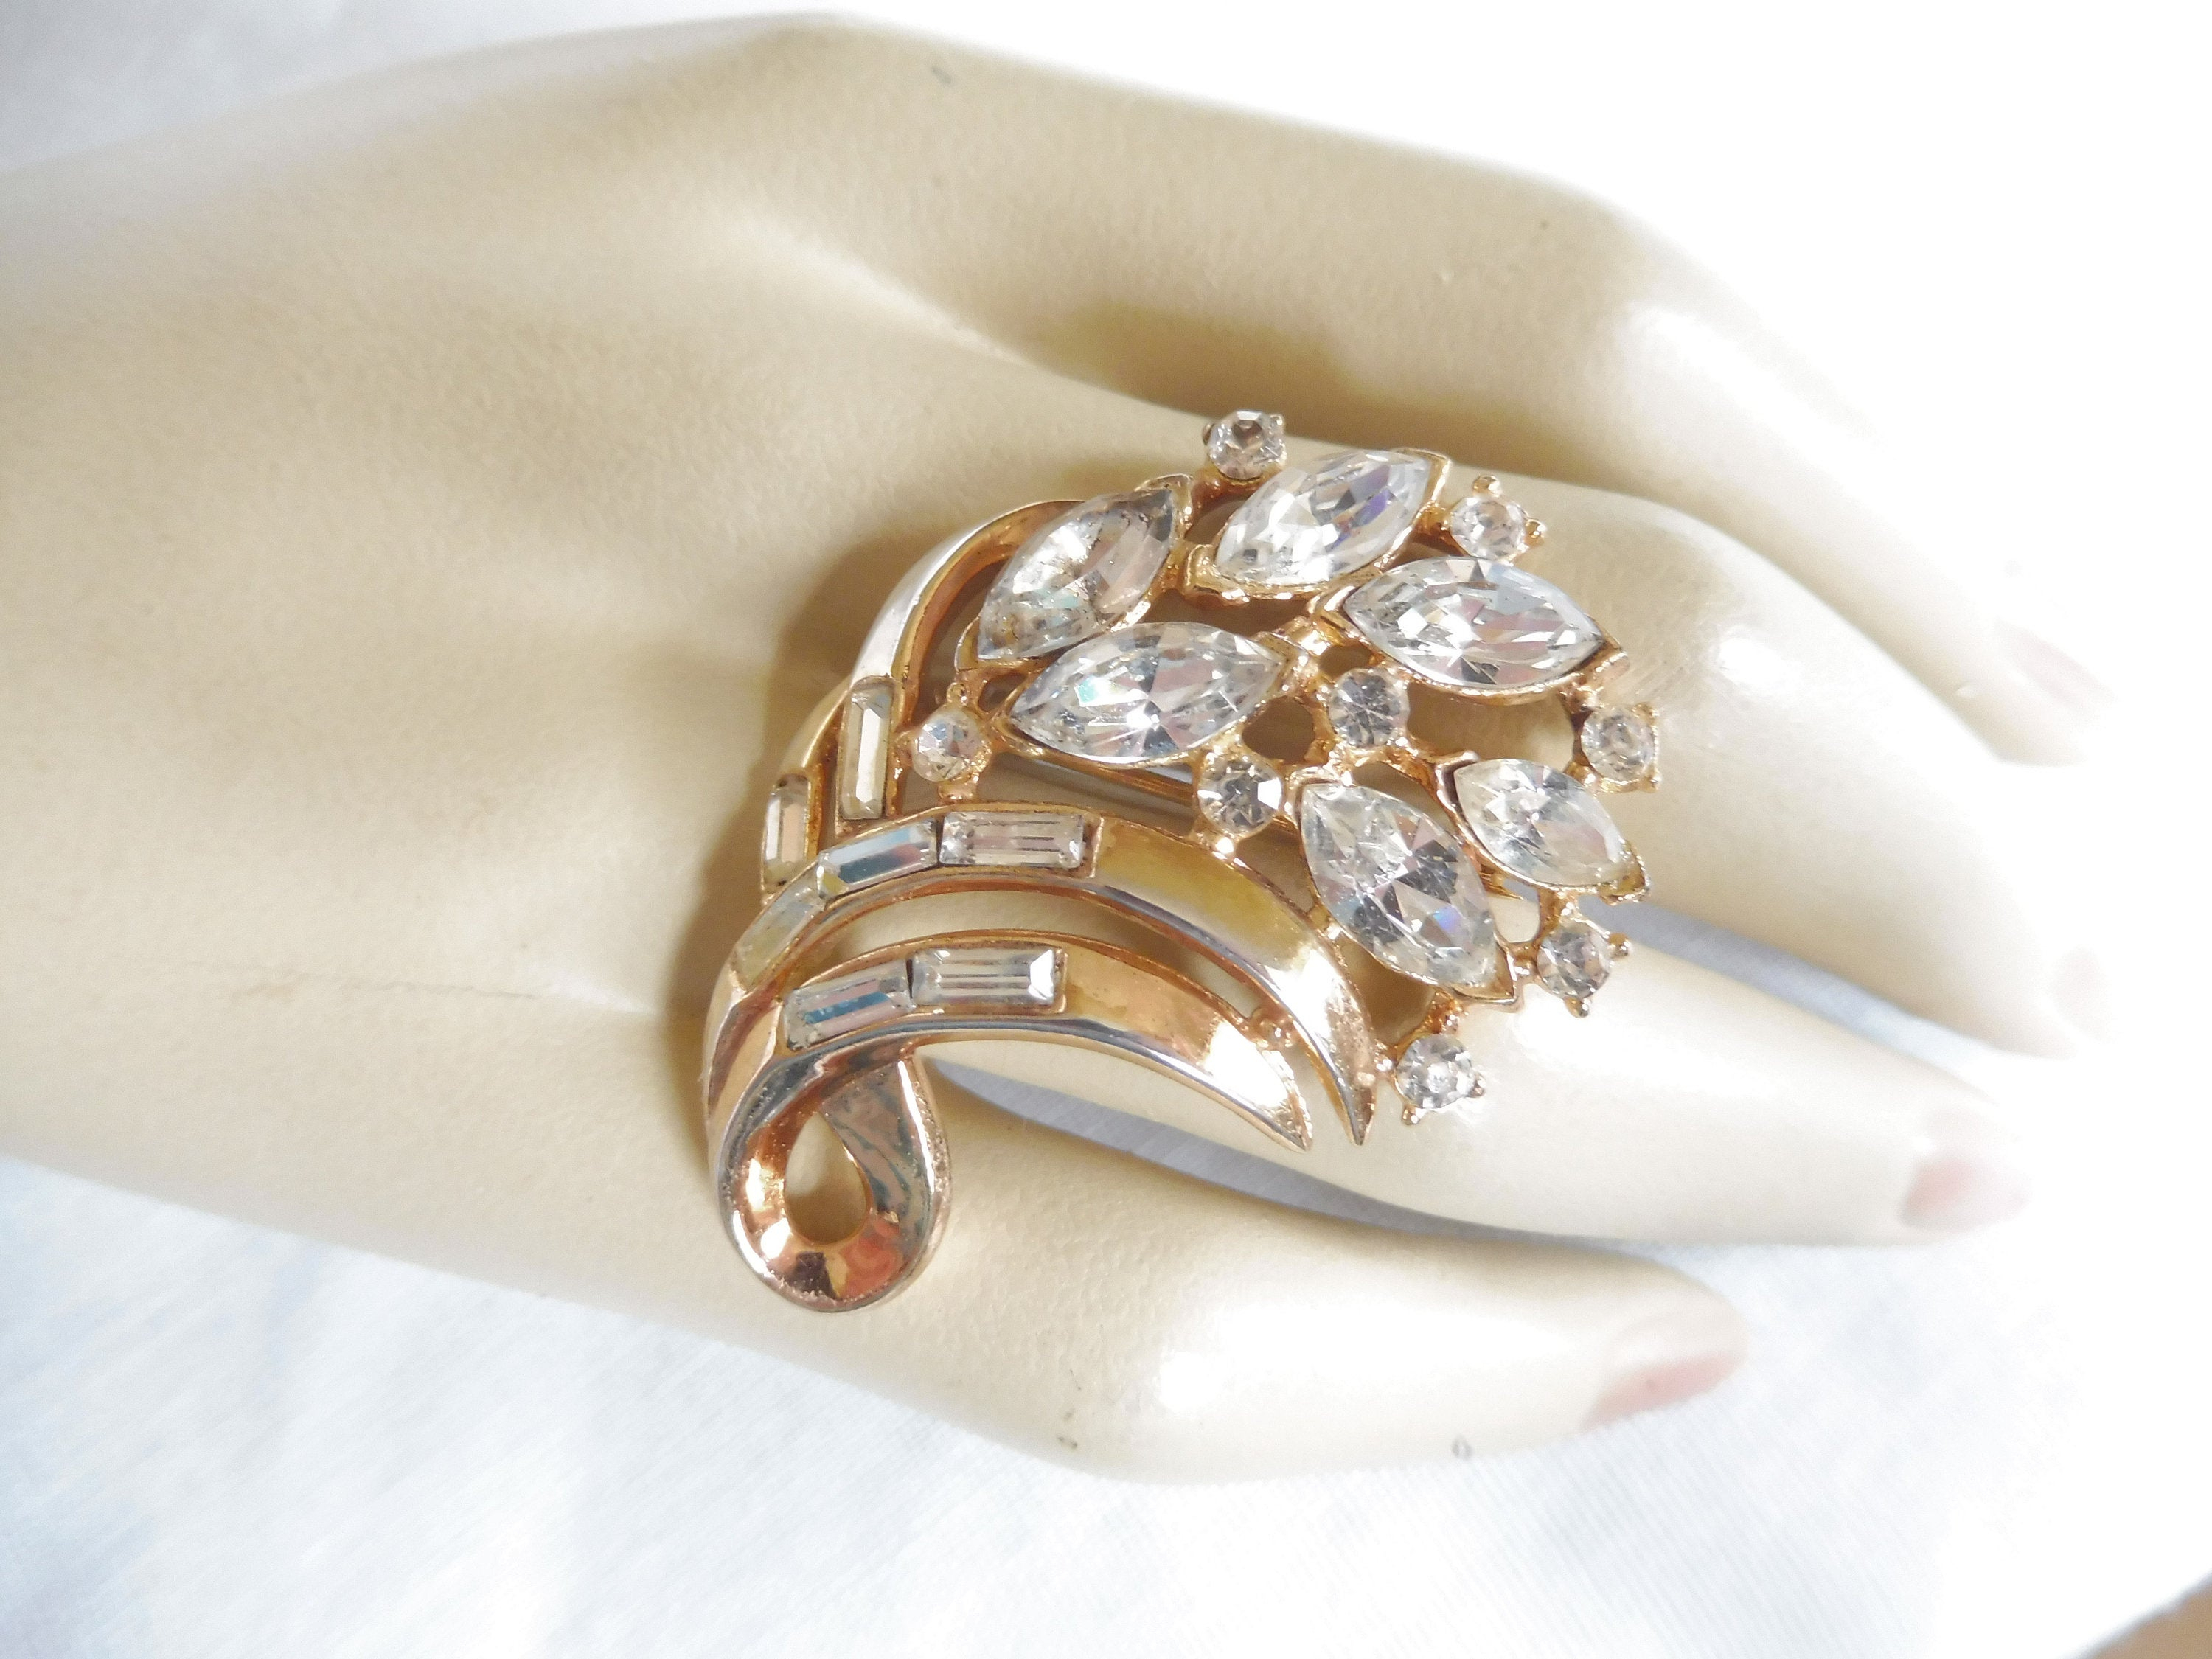 Vintage Crown Trifari Sparkling Clear Marquise Rhinestone Spray Brooch Pin Pertaining To Most Popular Clear Sparkling Crown Rings (Gallery 16 of 25)